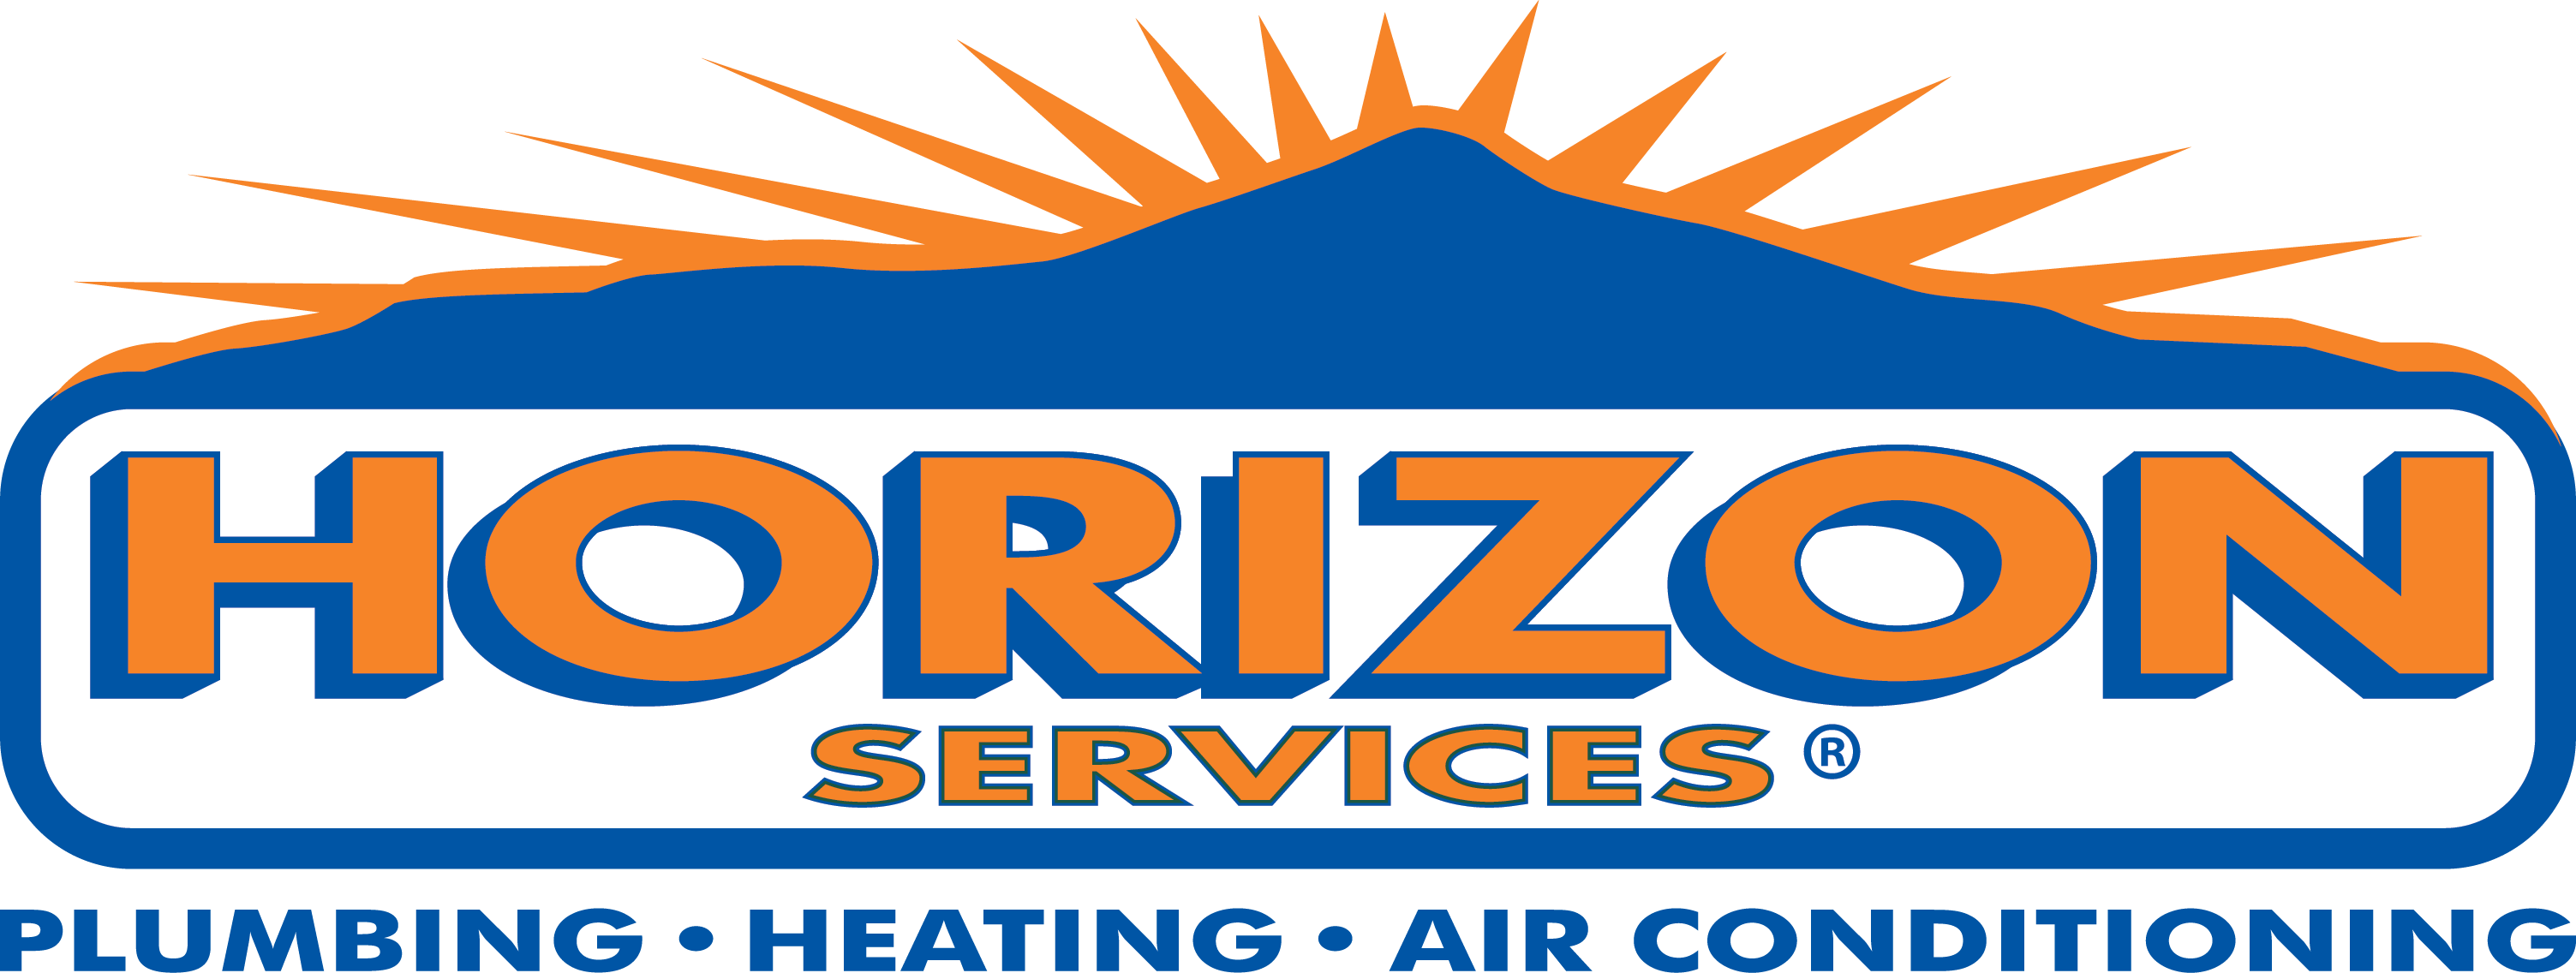 006. Horizon Services Inc.